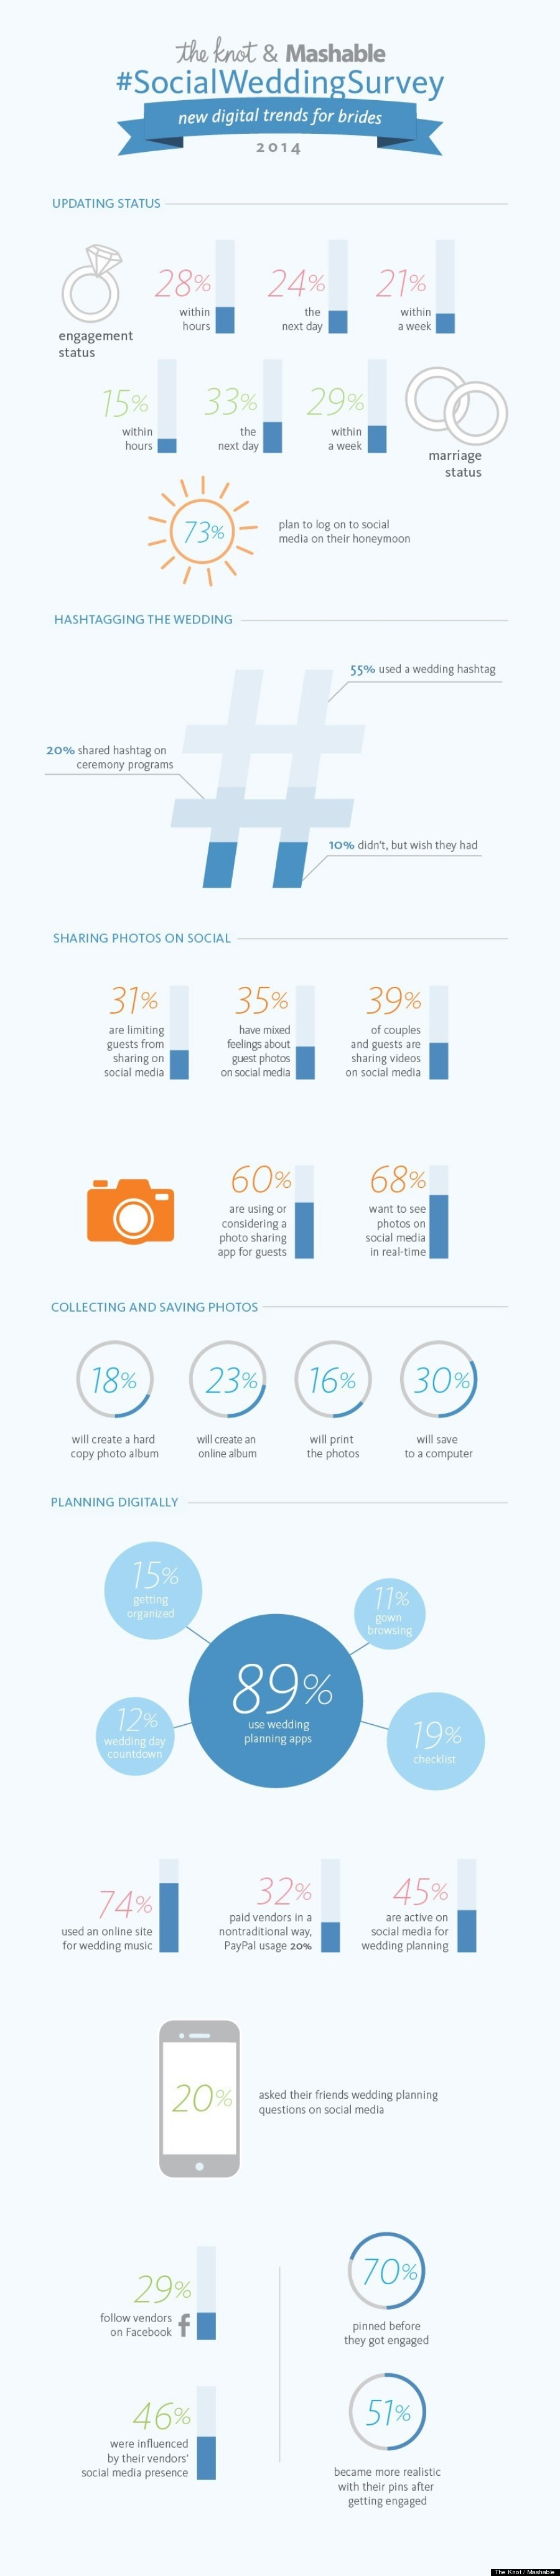 the knot infographic